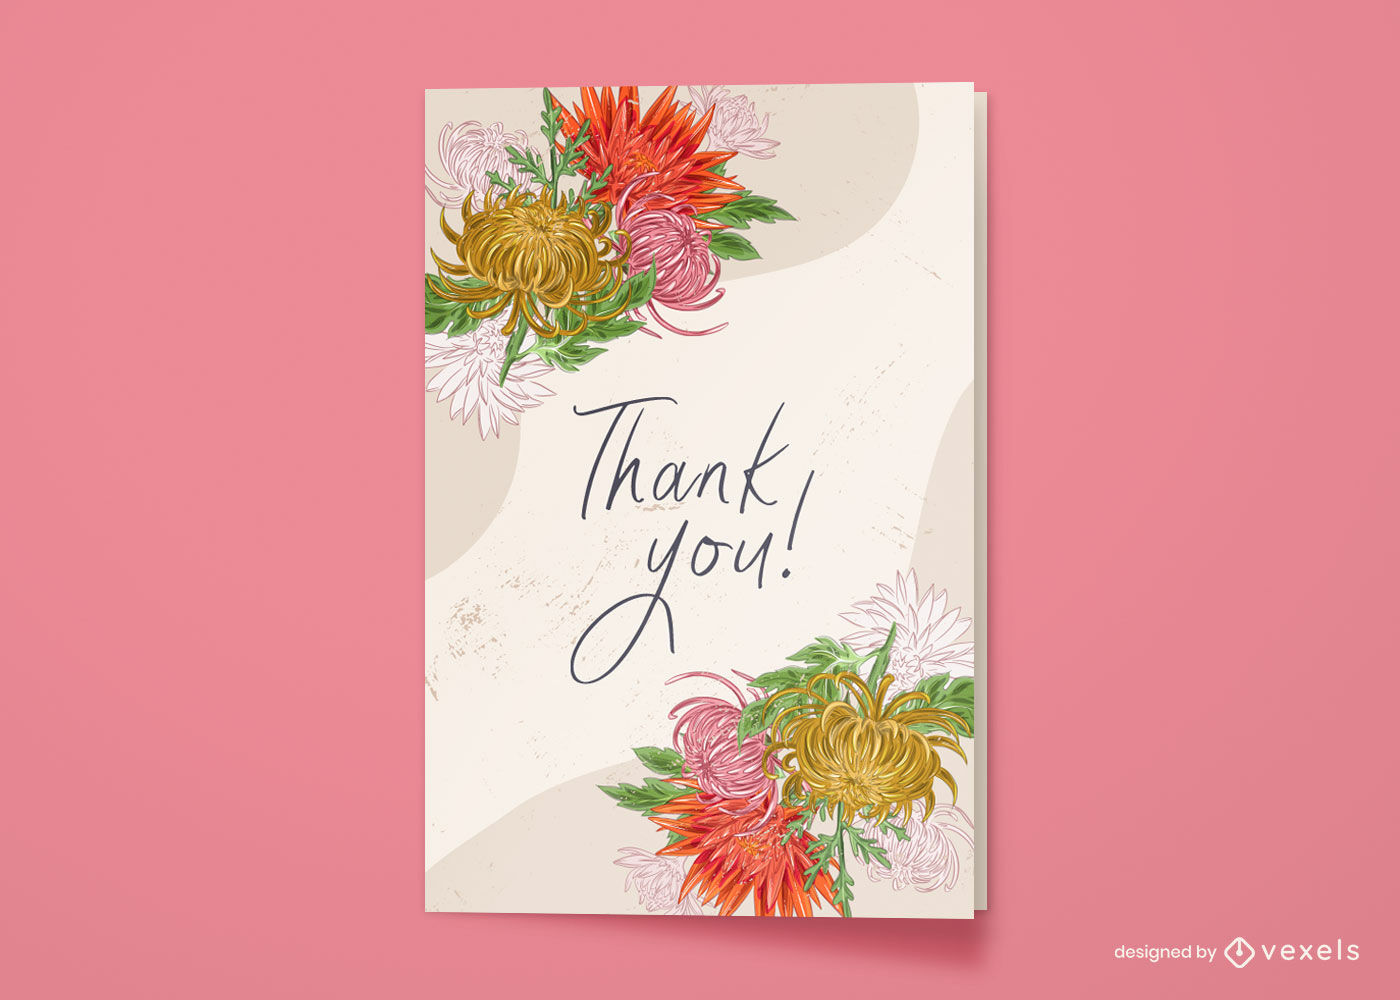 Flowers nature greeting card design